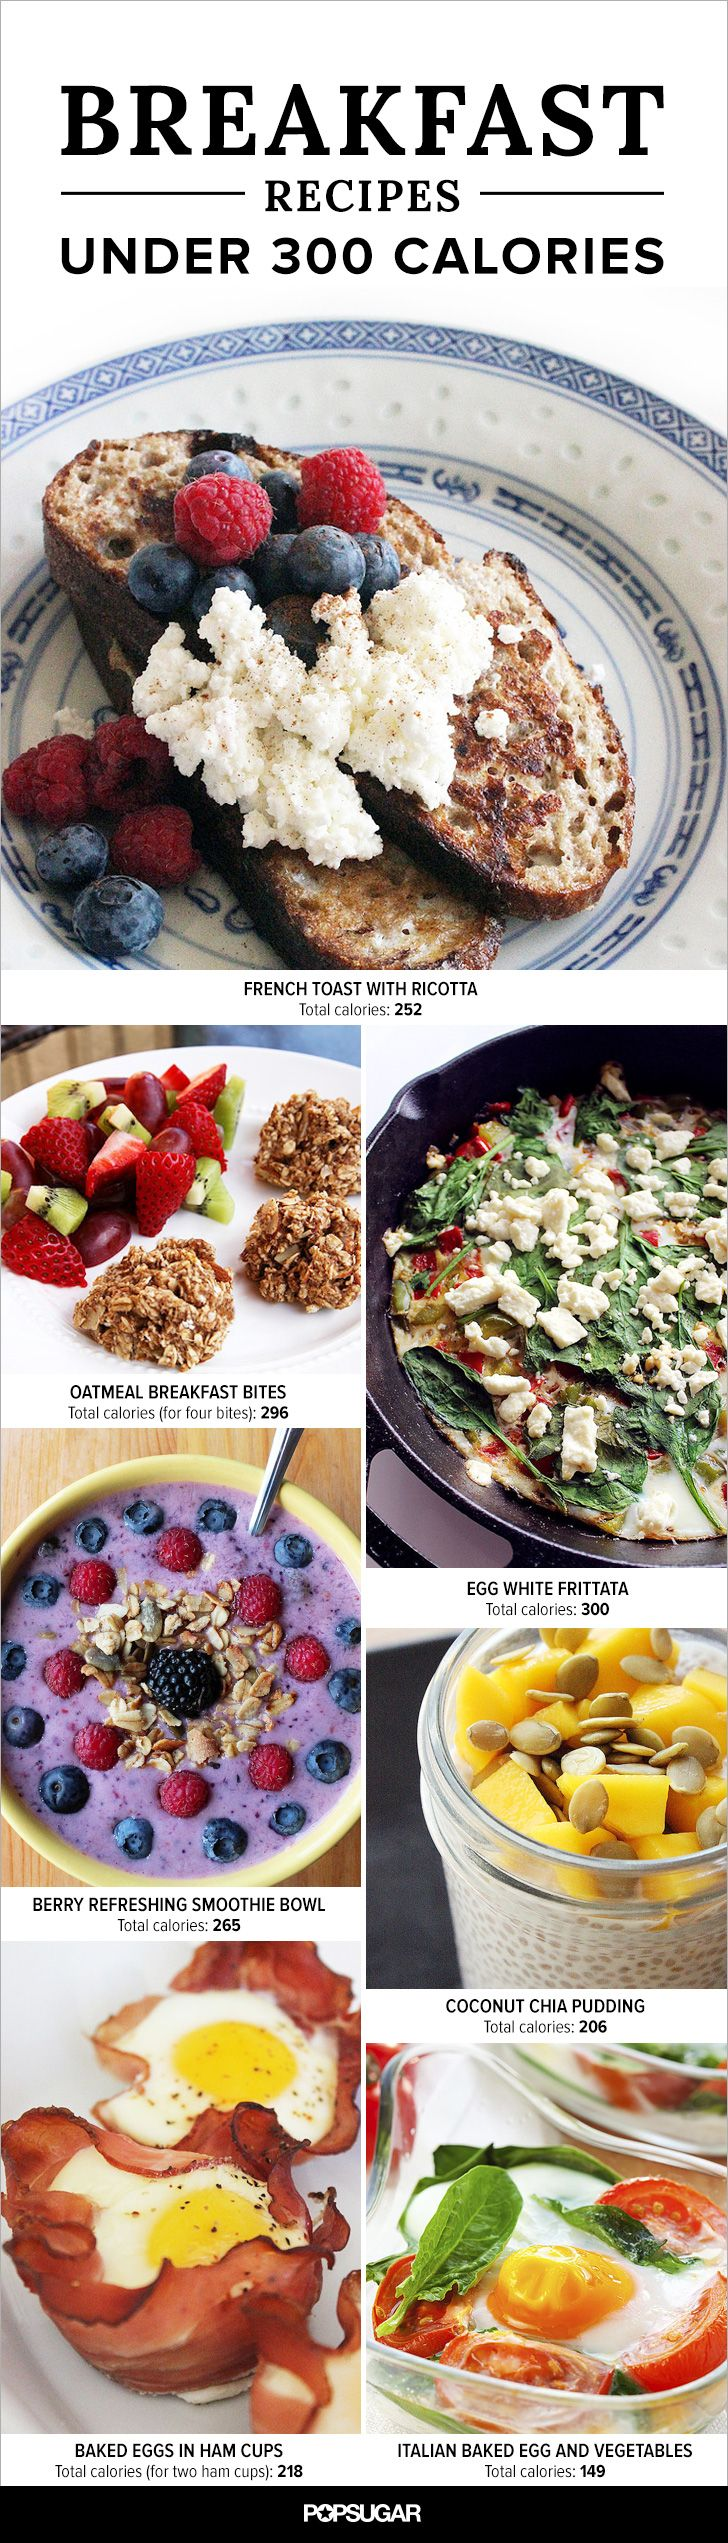 19 satisfying breakfasts under 300 calories 300 calories light these 18 light recipes all clock in under 300 calories and will keep you satisfied and energized until your next snack or meal forumfinder Choice Image